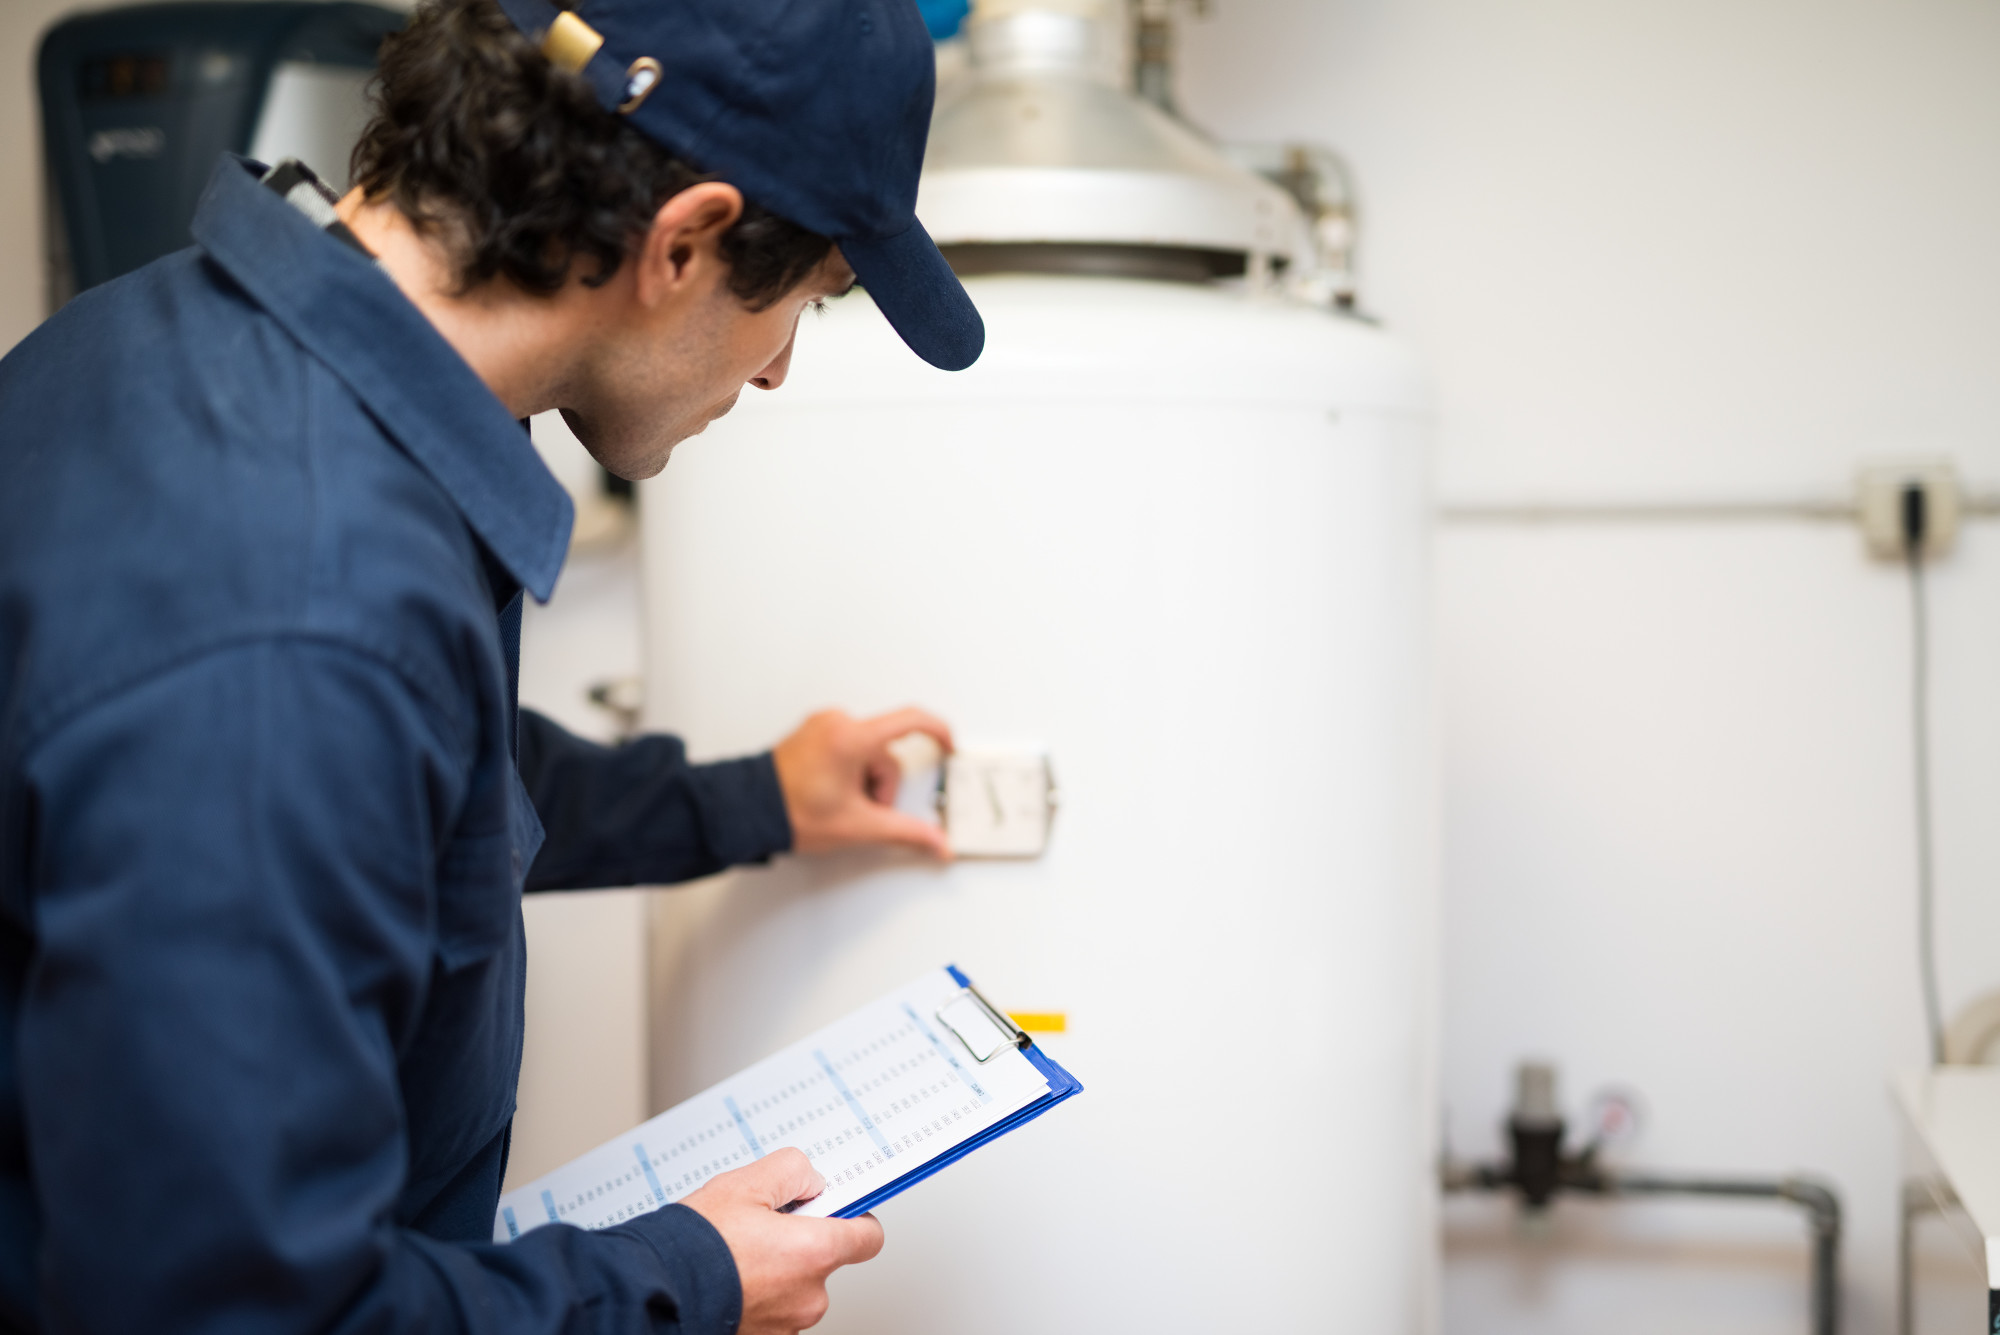 When it comes to water heater repair, you should know the prices you can expect to pay. Smash that link to learn more about the average cost.